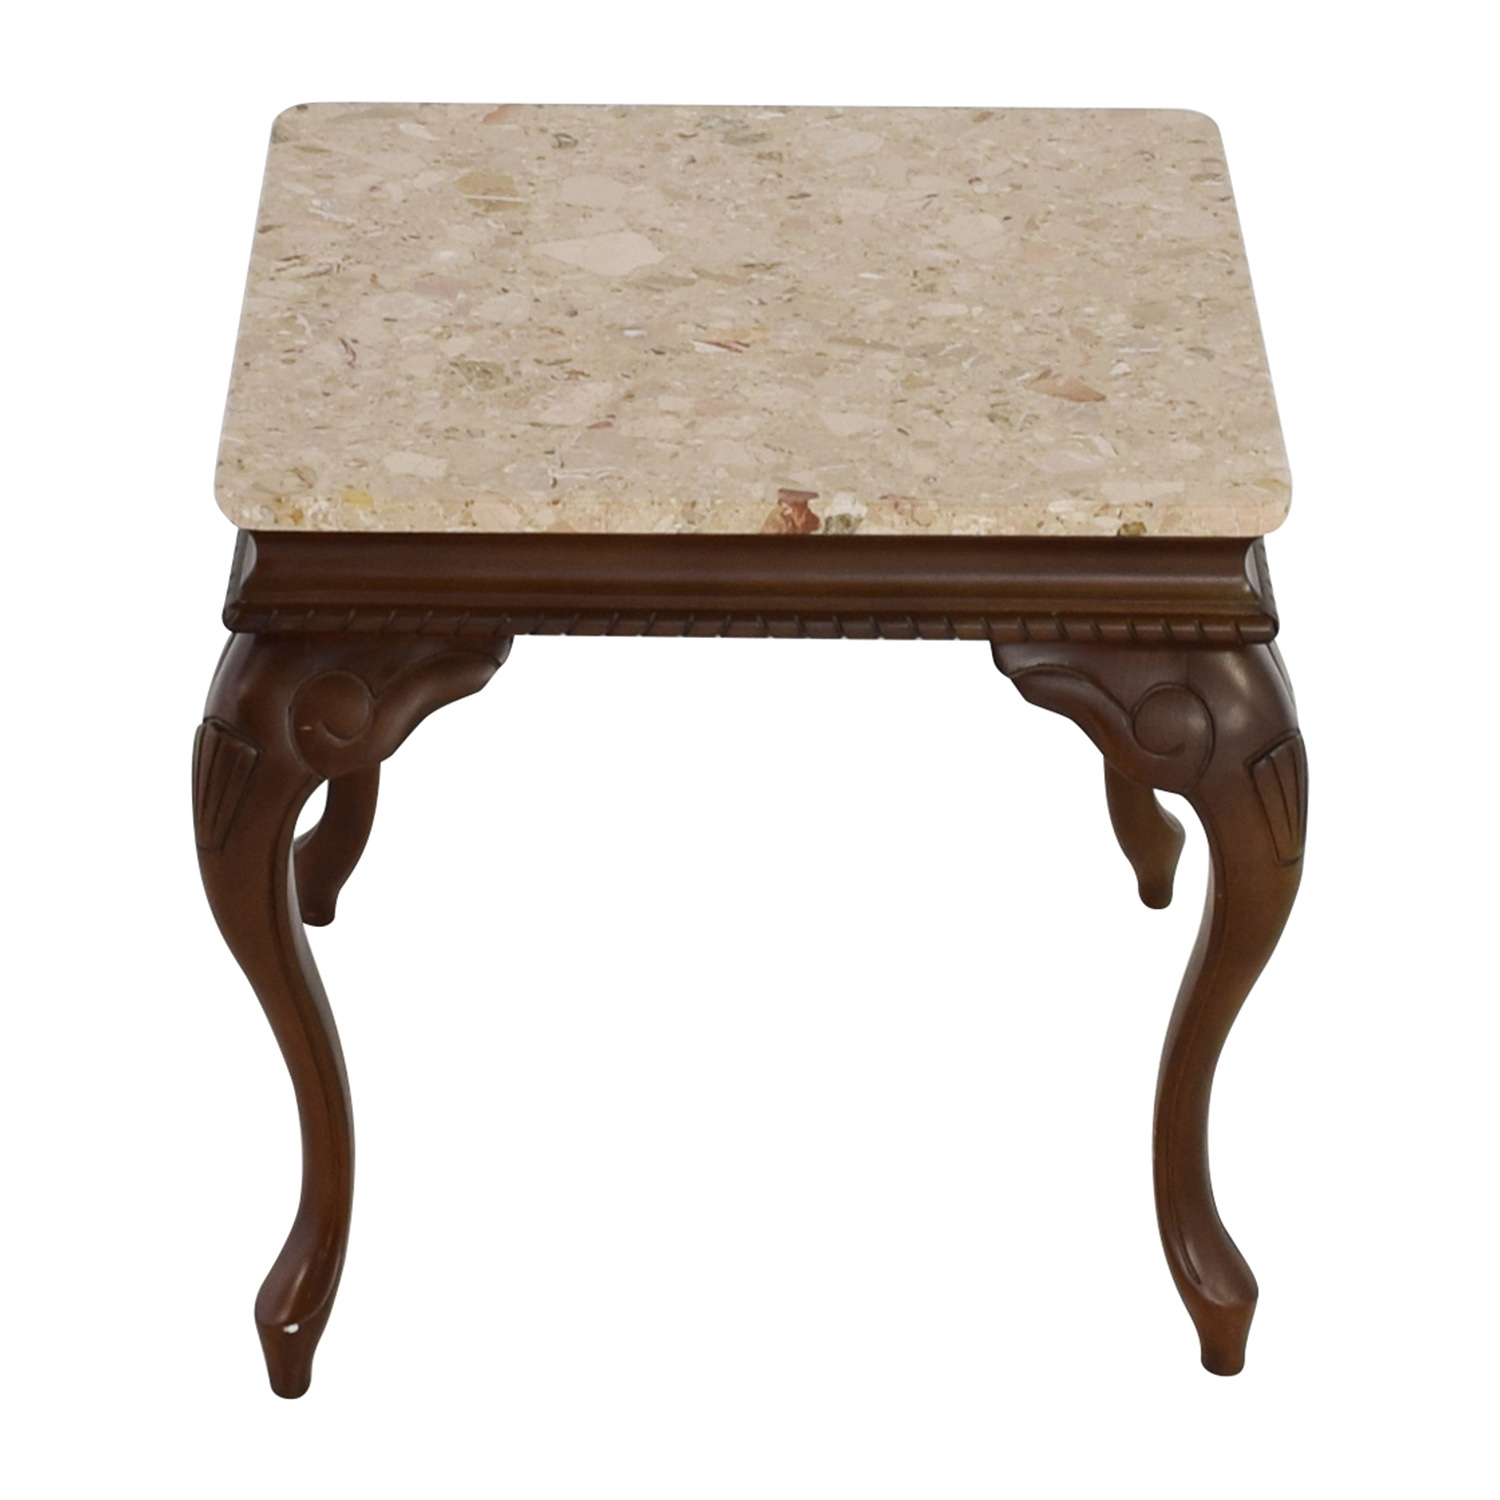 buy Marble Top End Table online